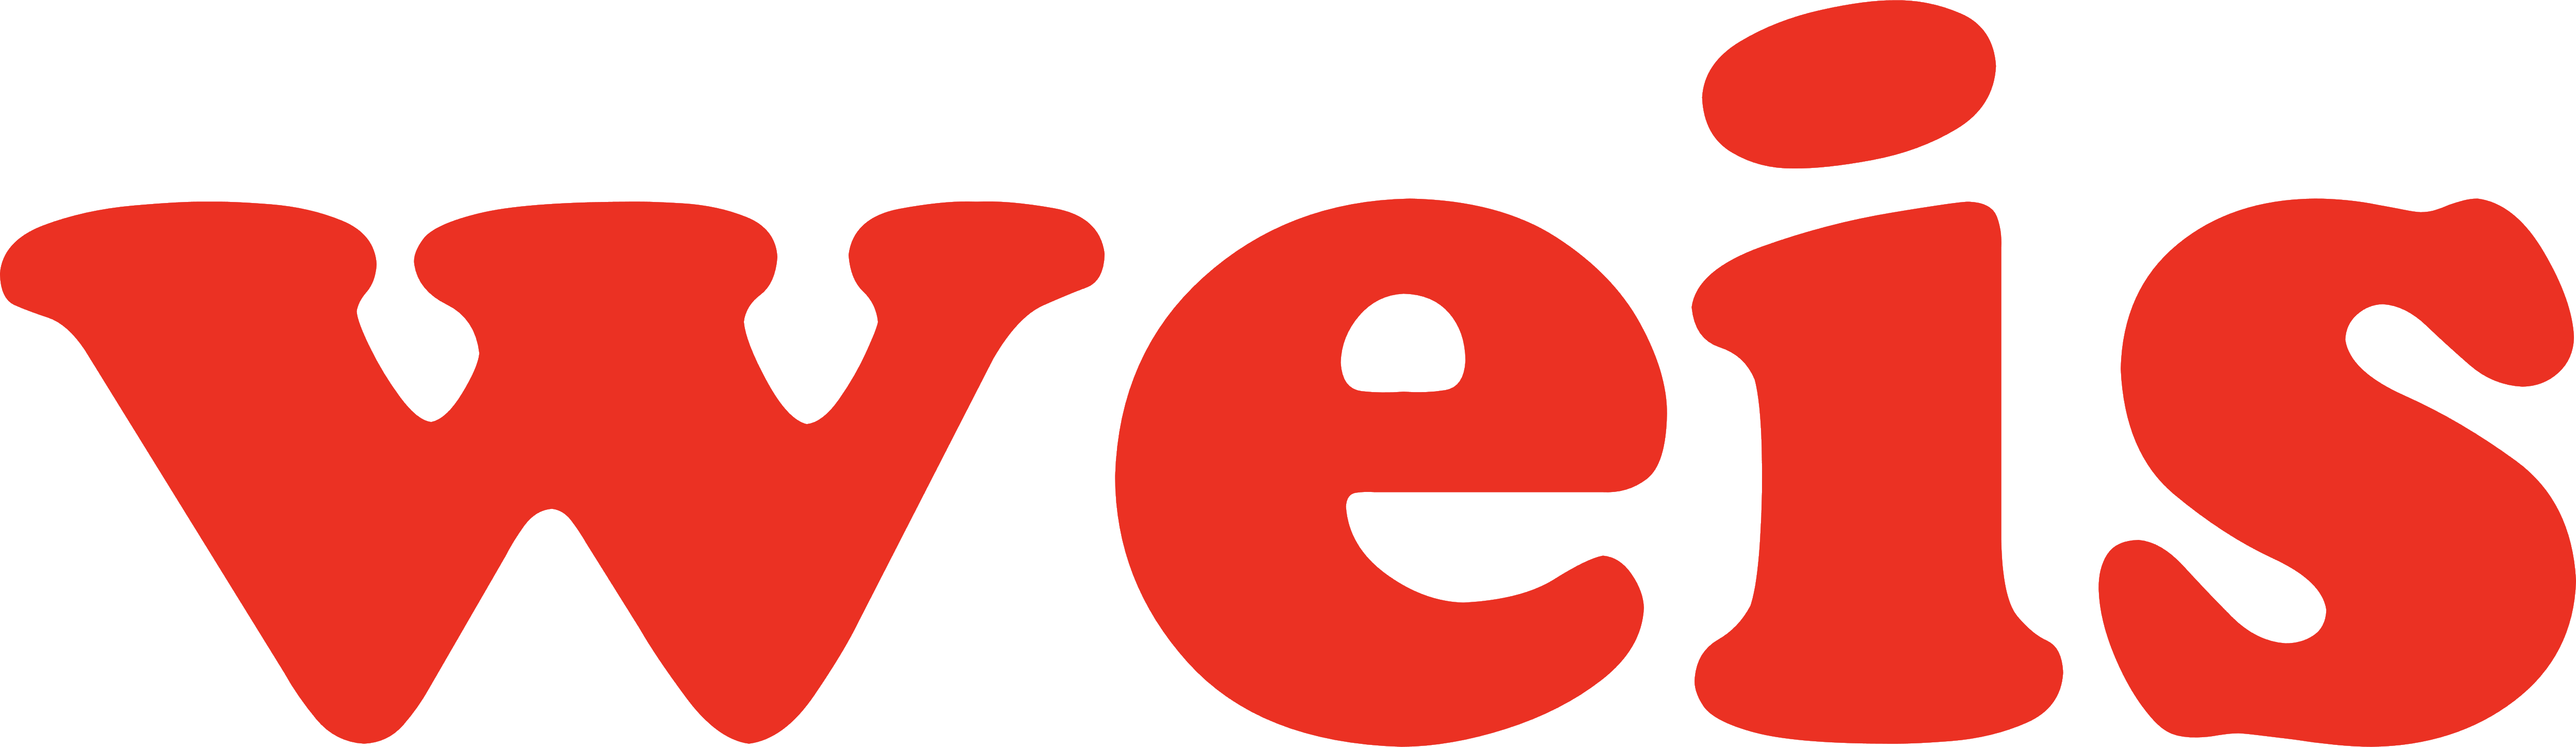 Weis logo, logotype. All logos, emblems, brands pictures gallery..